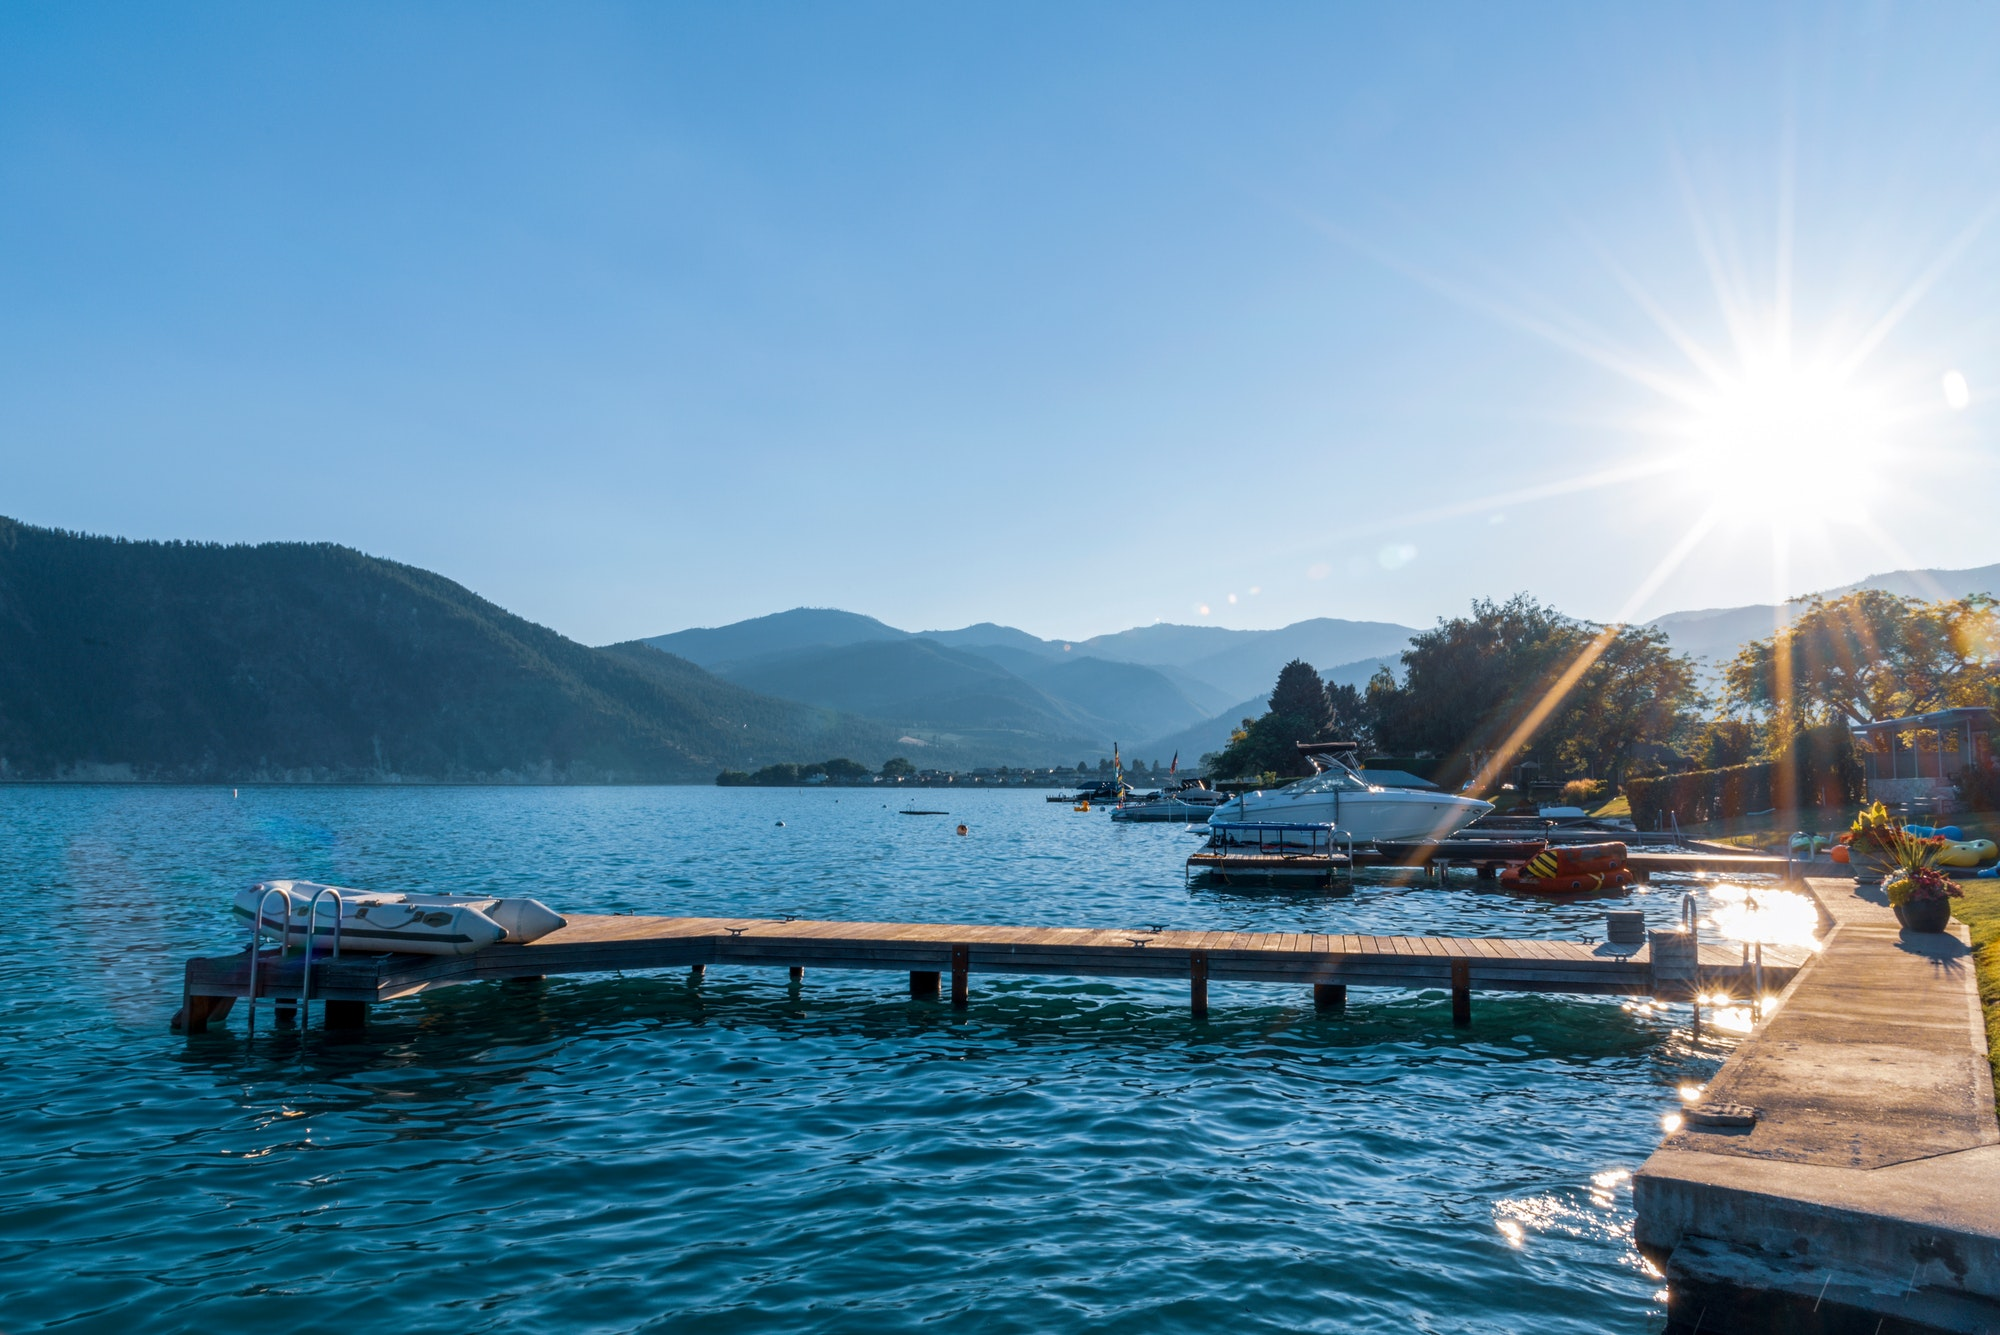 Lake shore boat dock with small inflatable dingy raft late day sunburst sunshine over mountains.